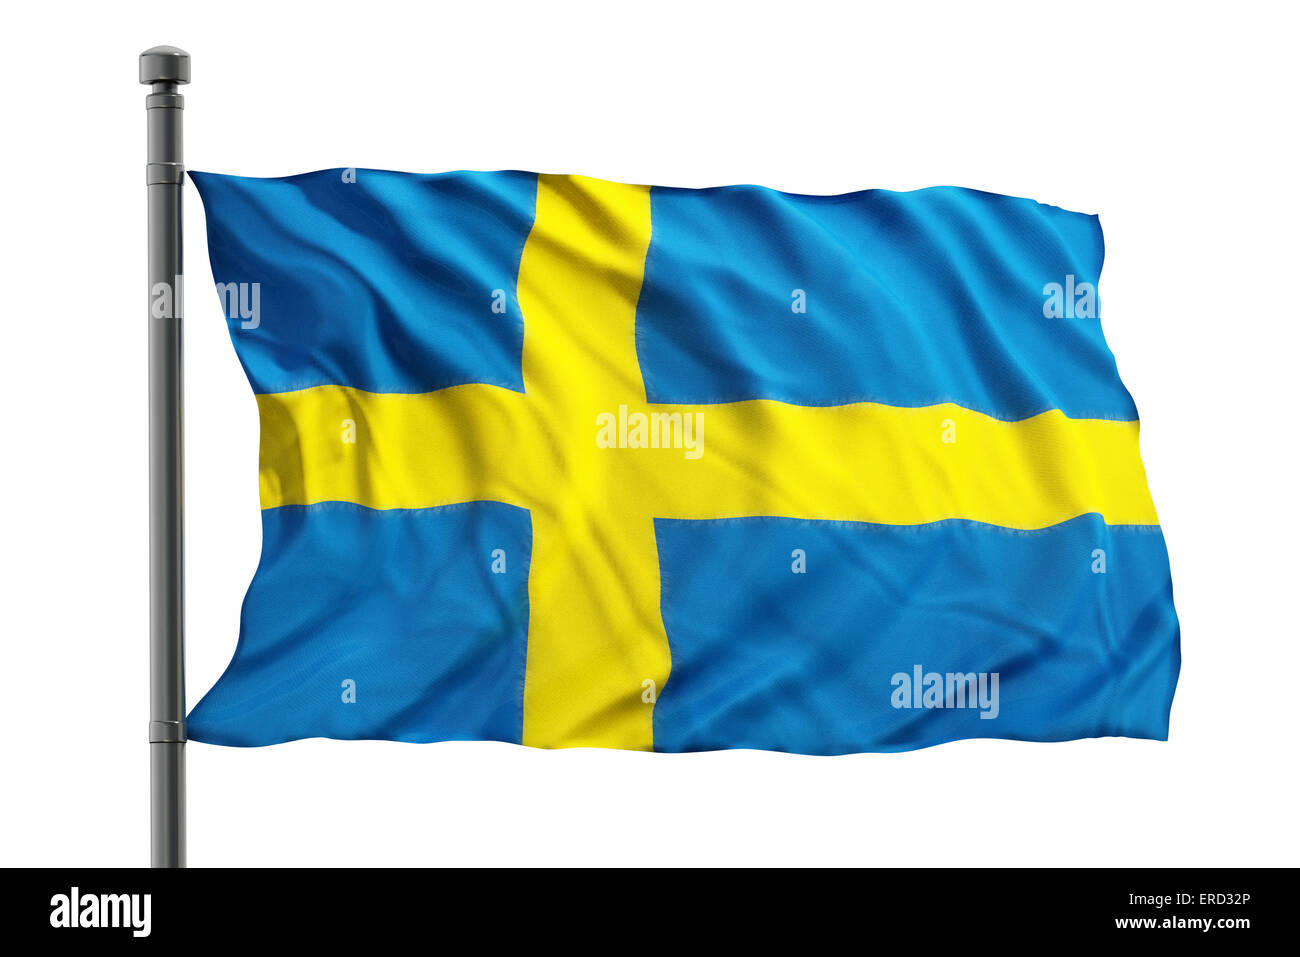 Flag of sweden isolated on white background - Stock Image